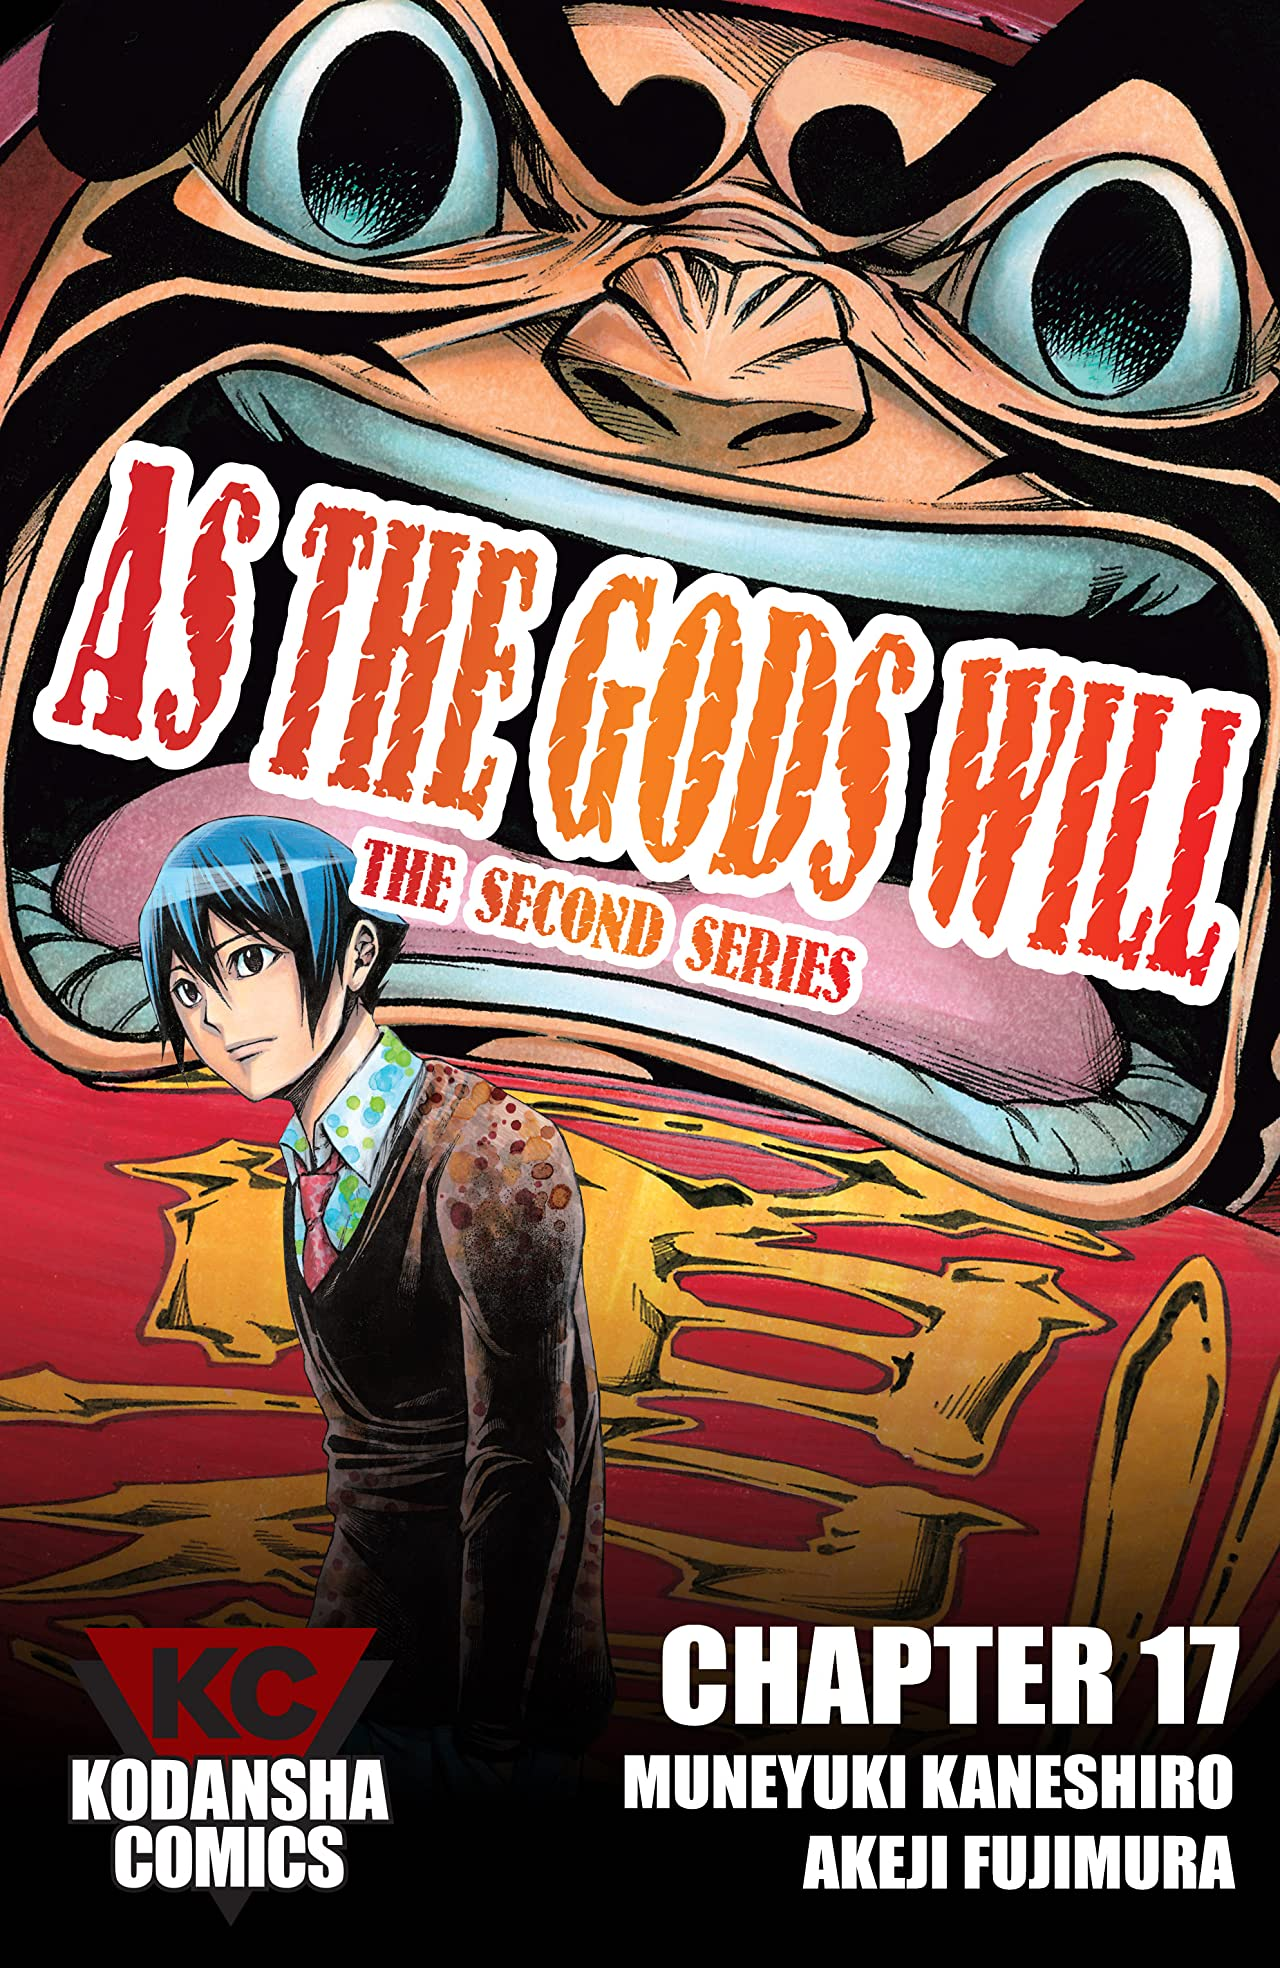 As The Gods Will: The Second Series #17